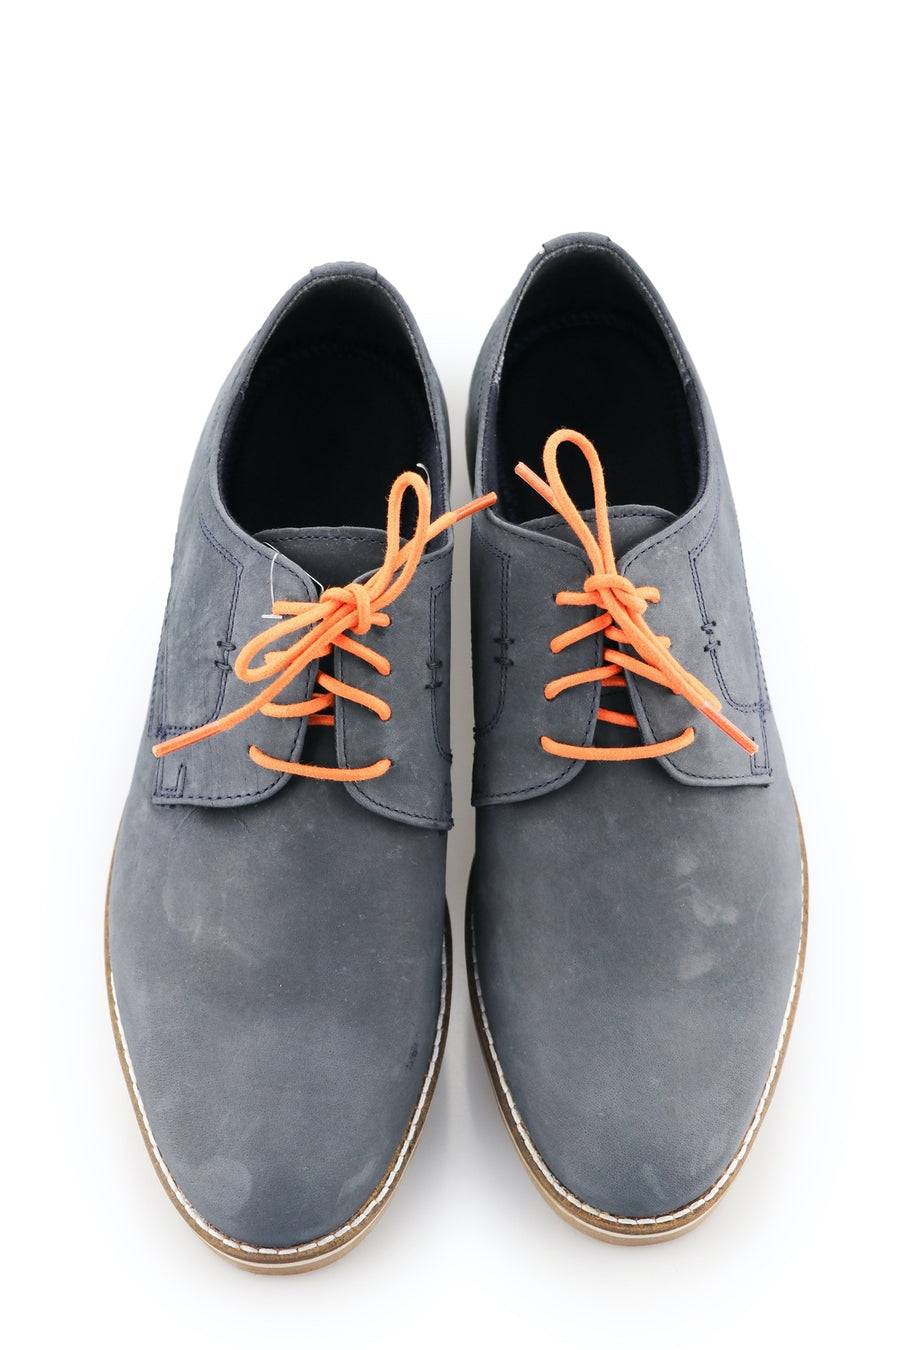 orange shoe laces tangello